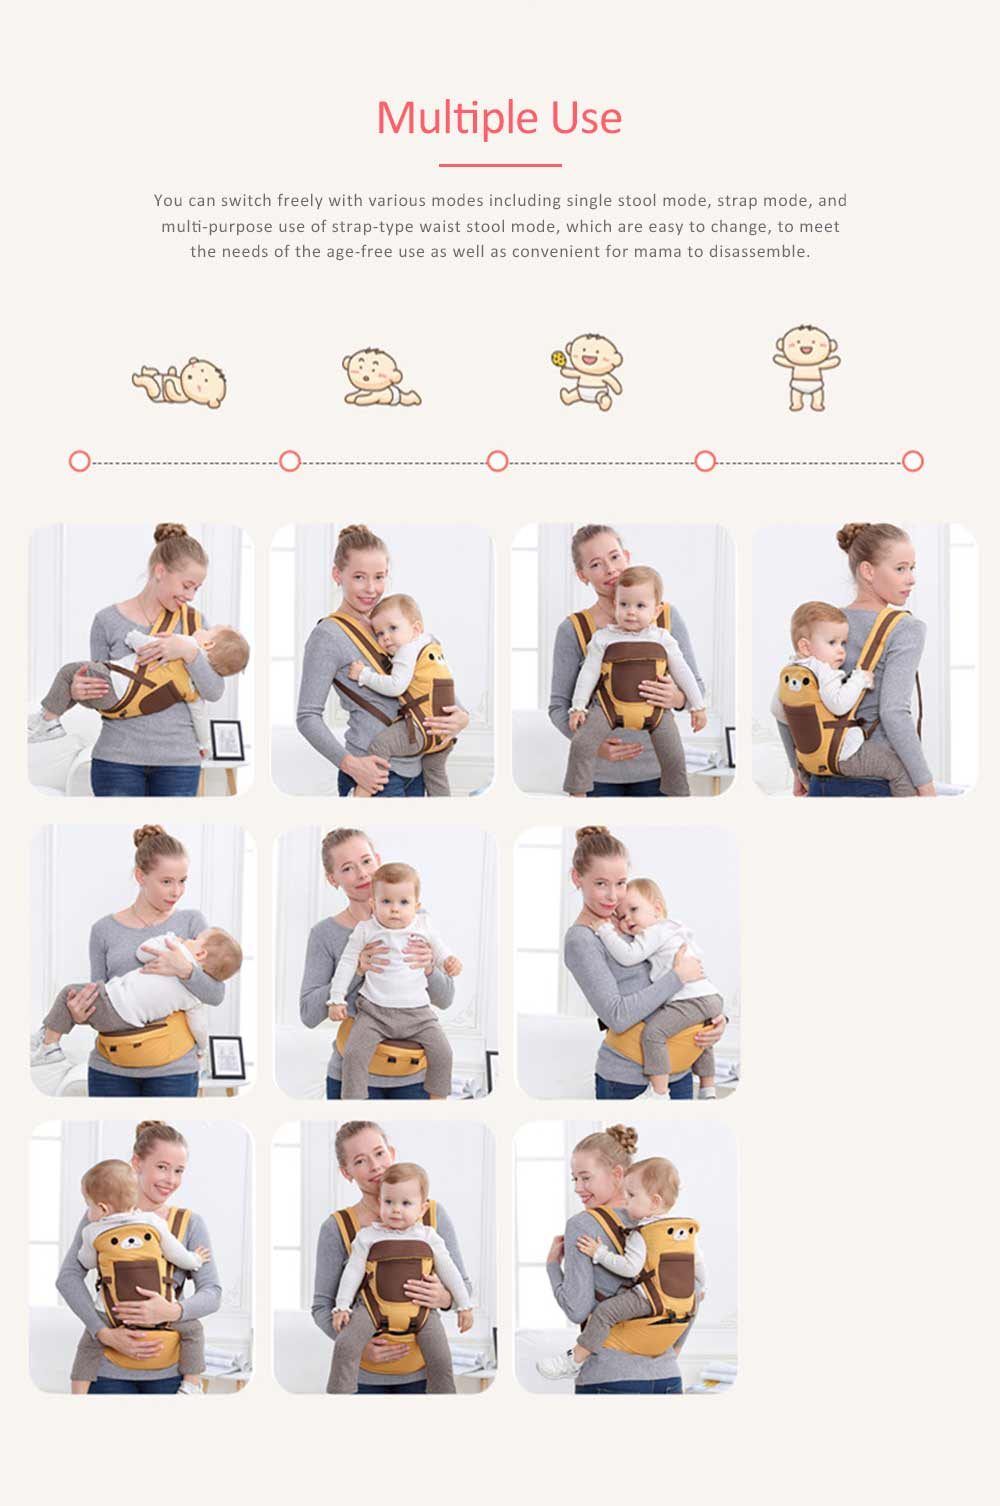 Soft Breathable Baby Carrier with Cartoon Animals Design, Multiple Functional Baby Lab for Newborn, Infant Toddler 2